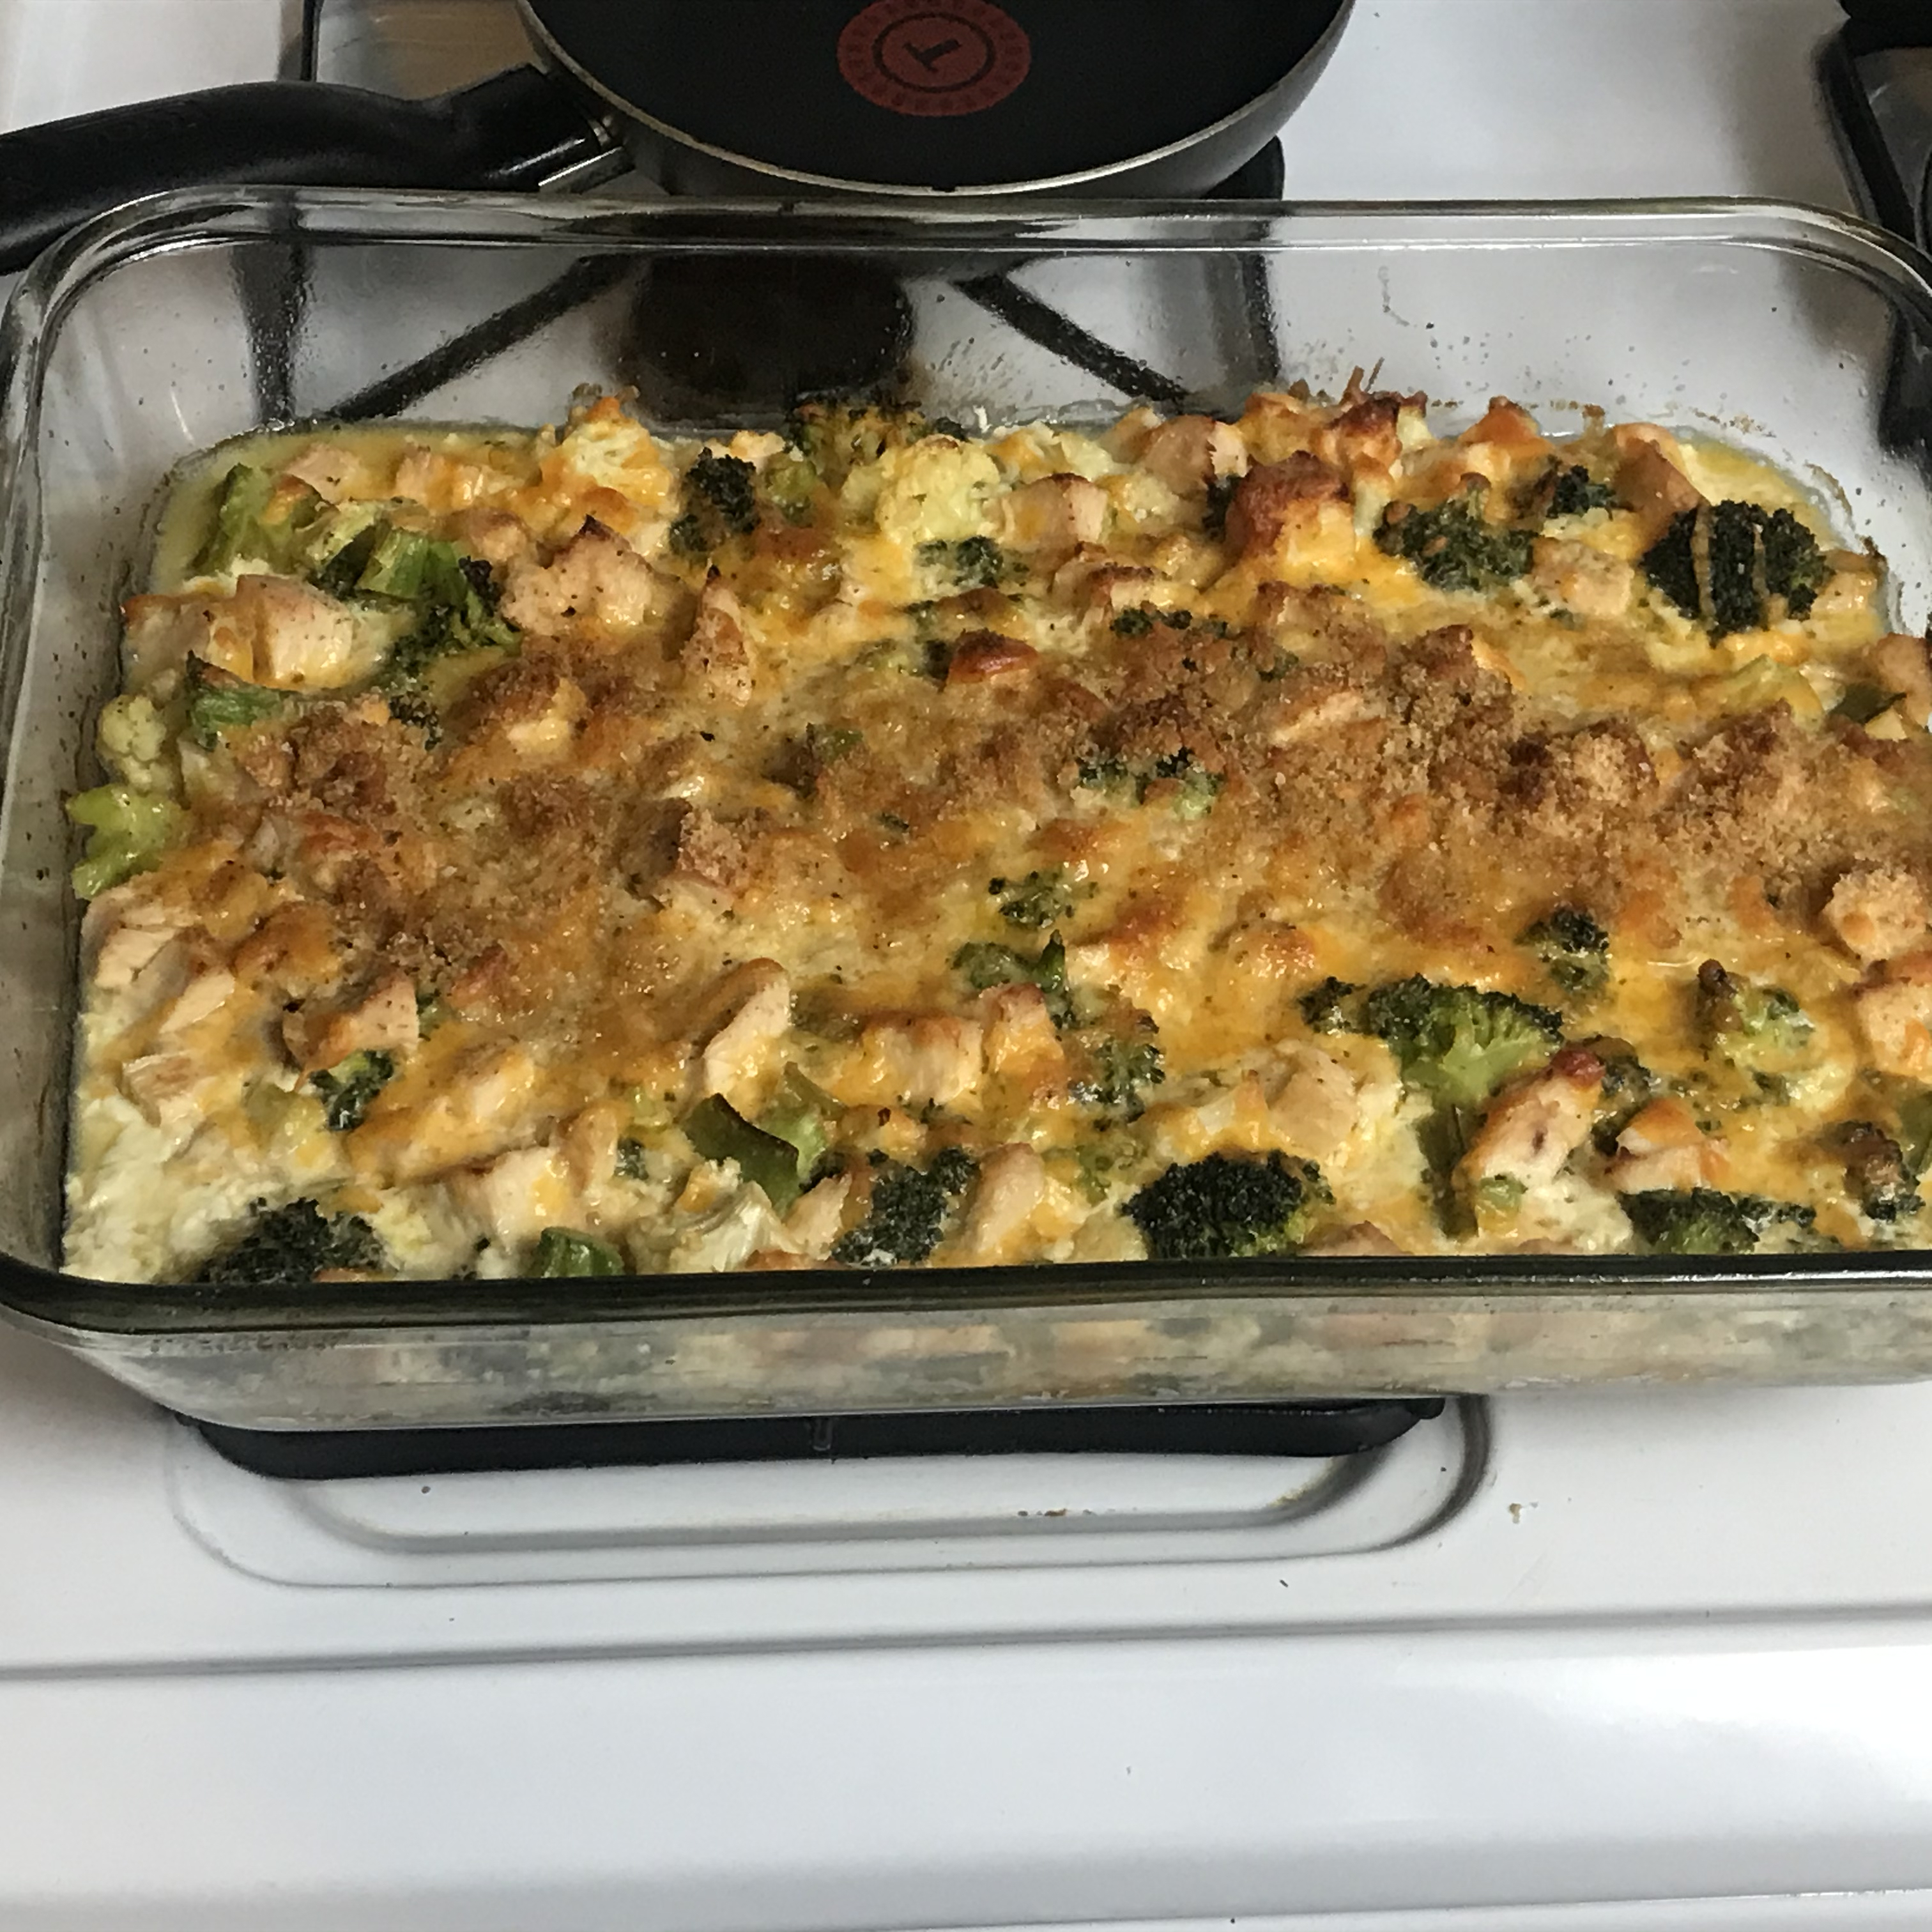 Cheddar Broccoli and Chicken Casserole from Country Crock® A Lowrey